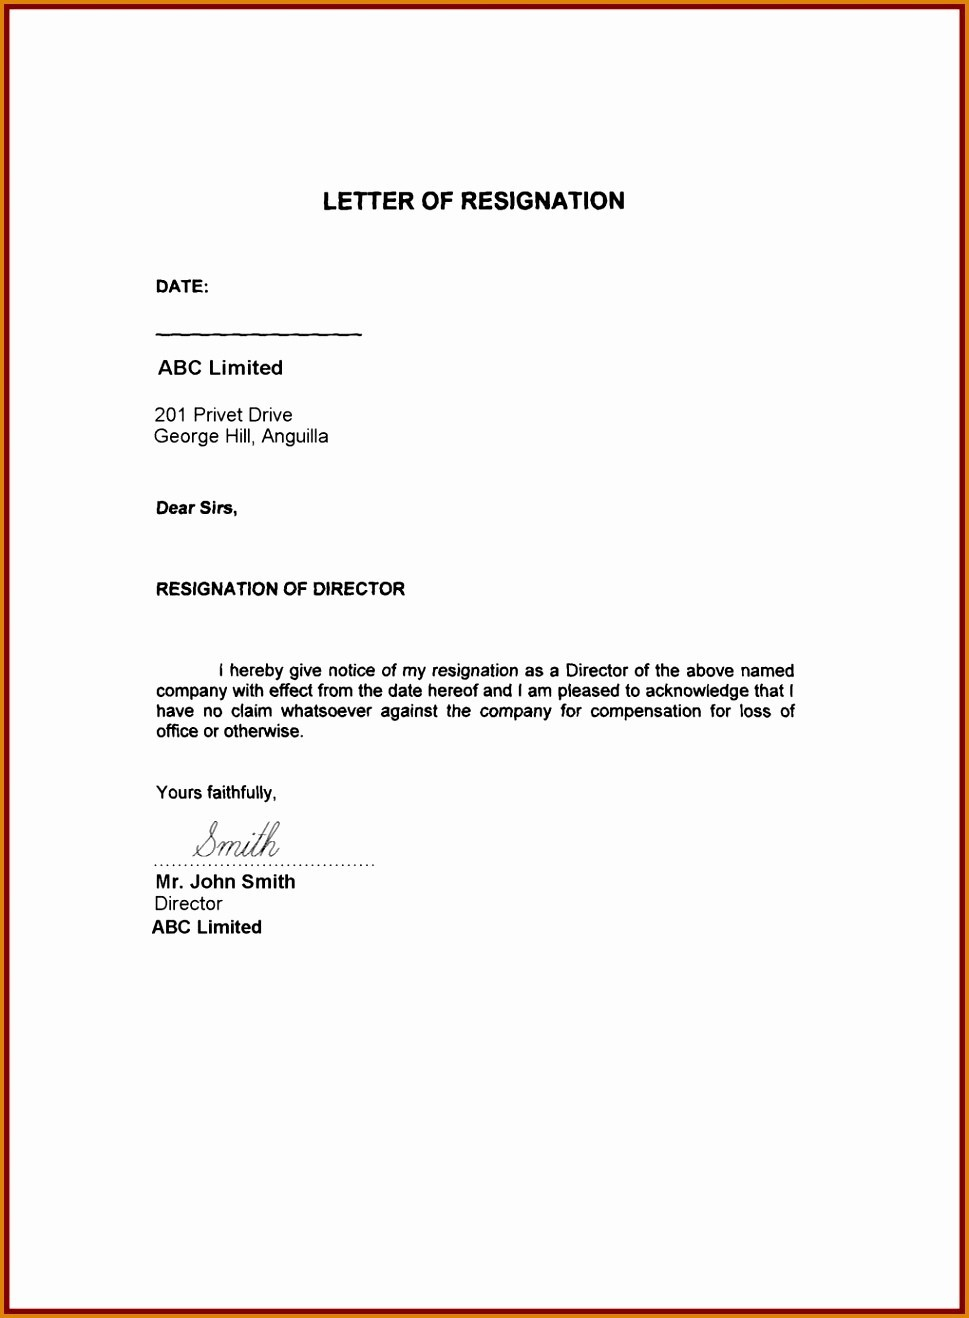 Resignation Letter Free Template Download - Resignation Letter Resign Exampleample format Download Fresh Letters